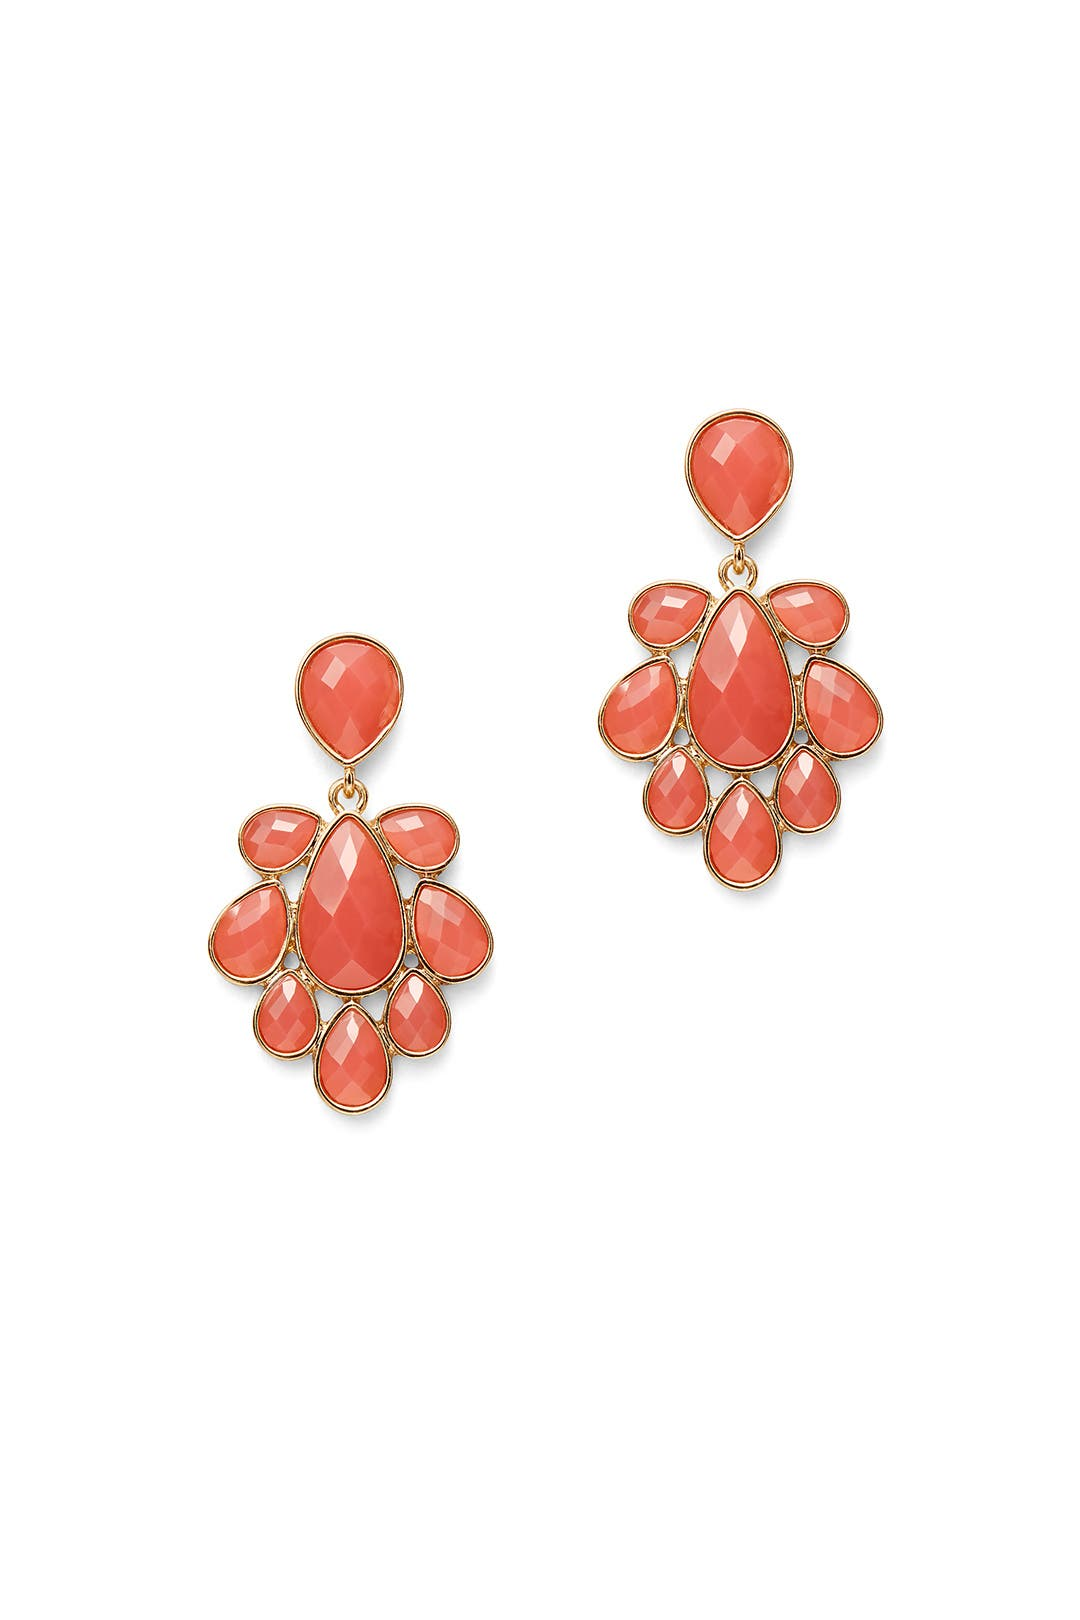 Grapefruit Drops by Slate & Willow Accessories